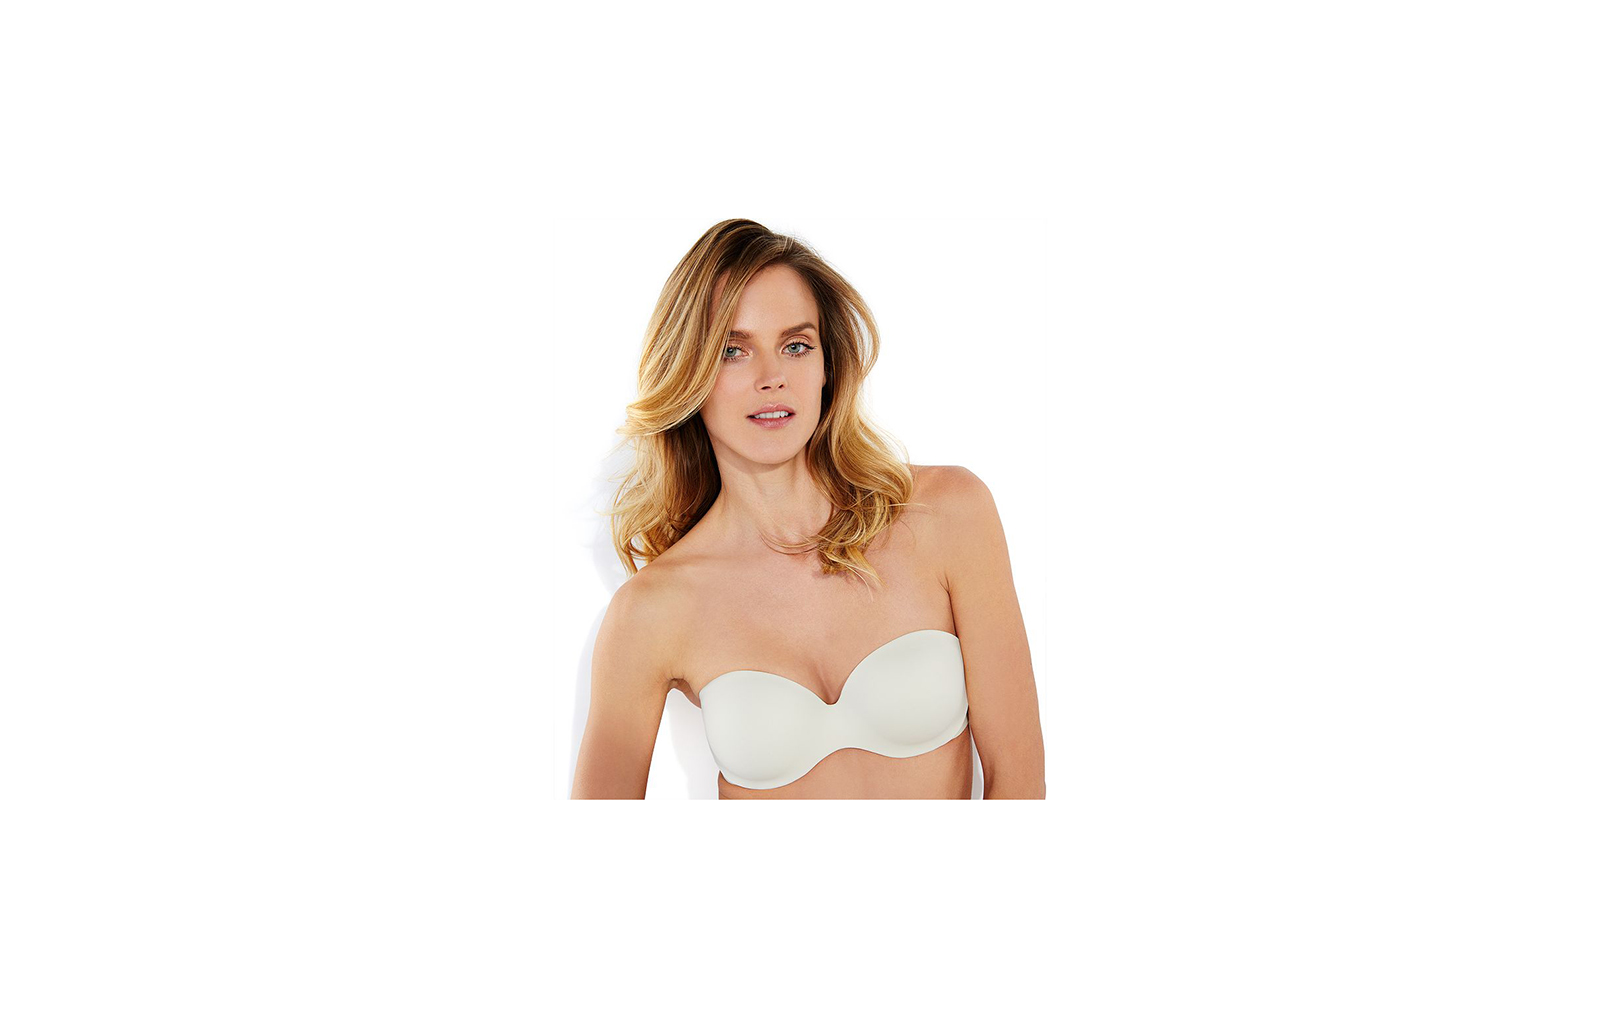 """Warner's Bra """"This Is Not A Bra Full-Coverage Strapless Convertible Bra 1693"""""""